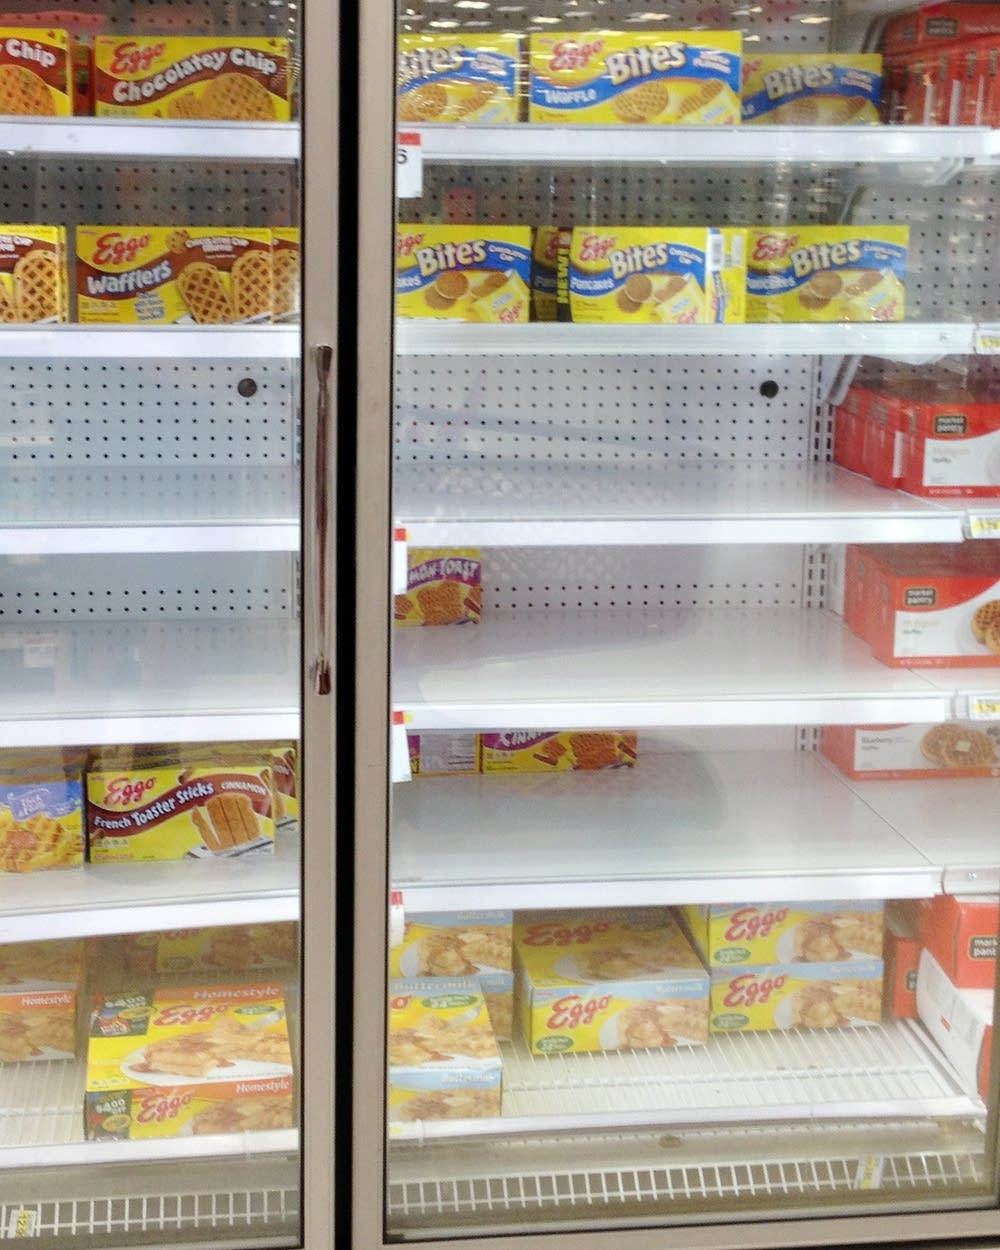 Terrific Expect More Empty Shelves Frustrate Target Customers Execs Interior Design Ideas Apansoteloinfo